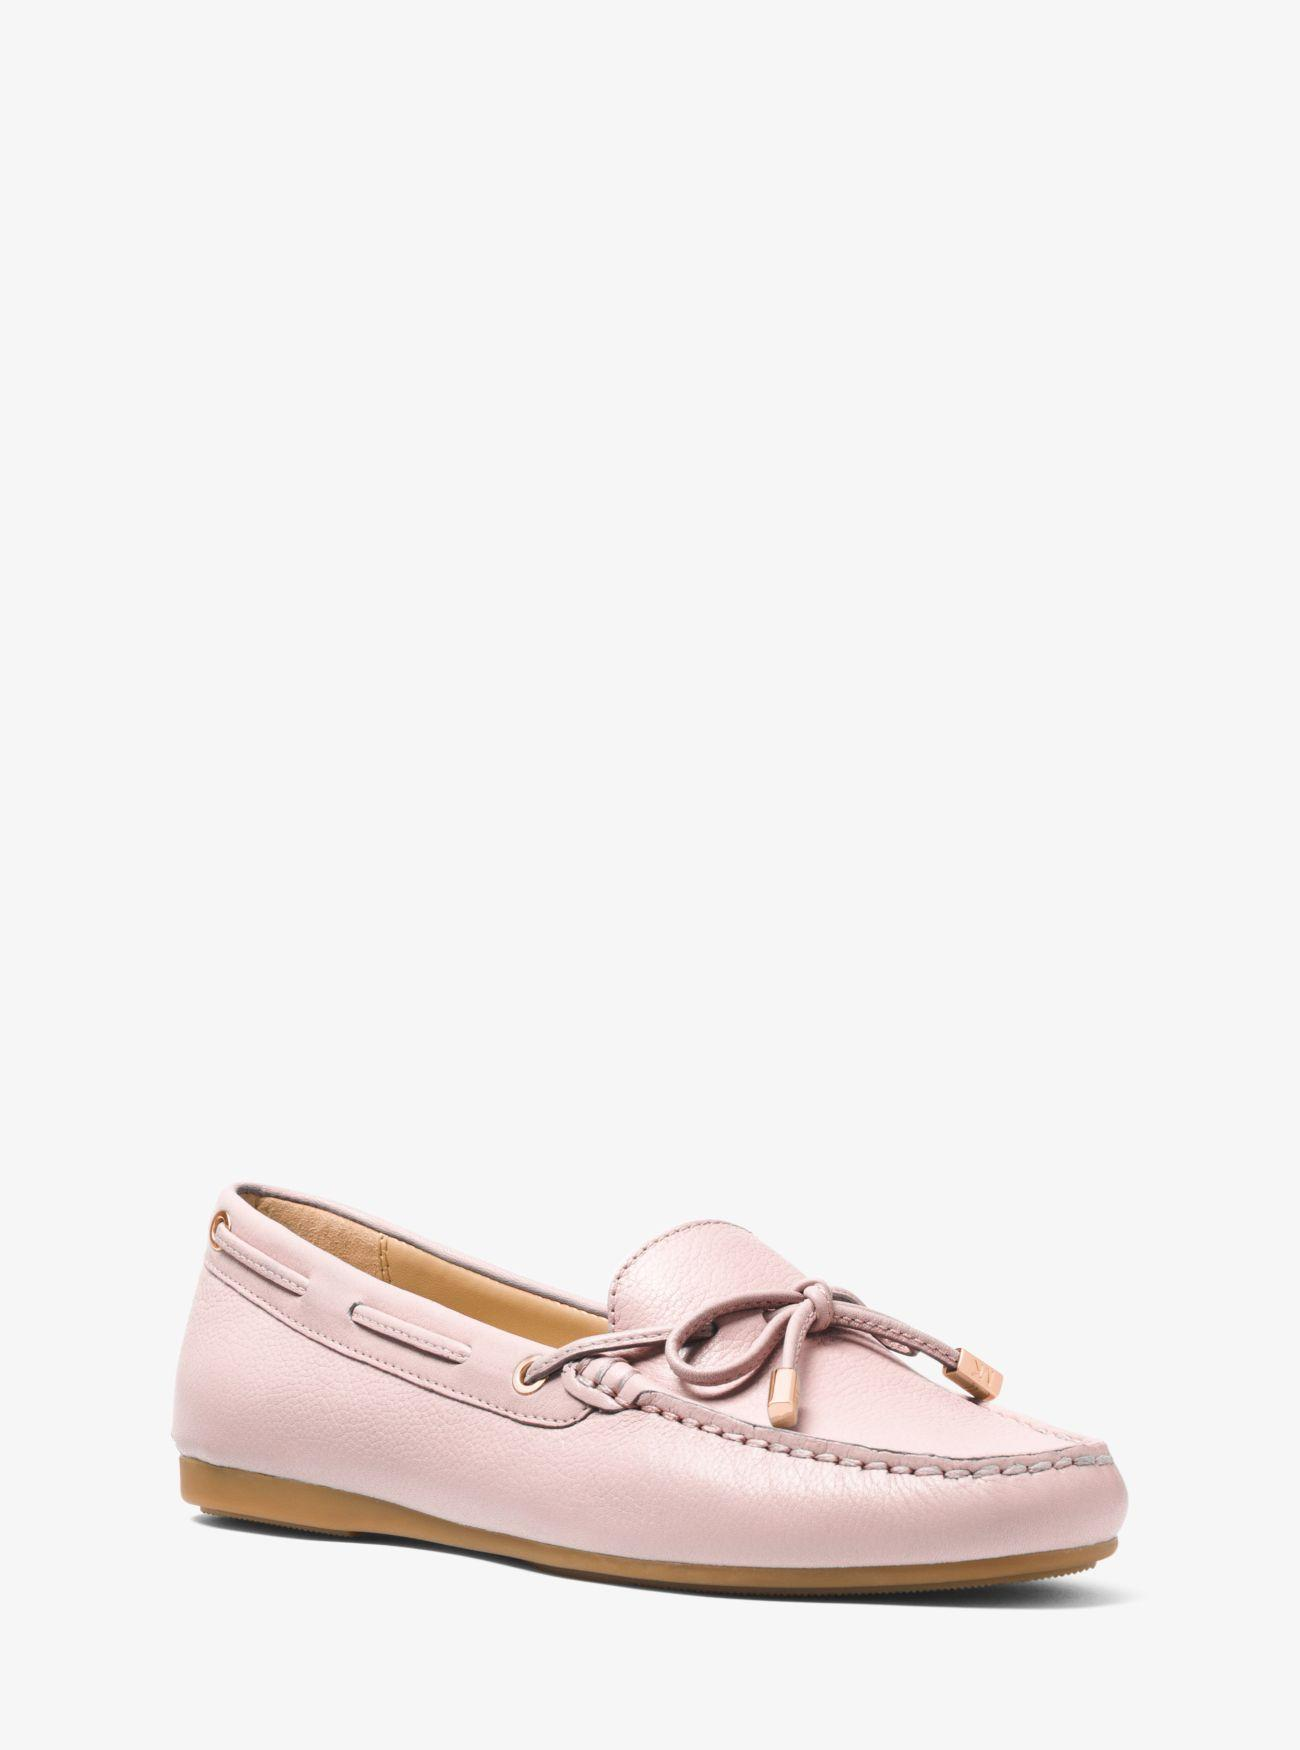 37bab69e078 Lyst - MICHAEL Michael Kors Sutton Leather Moccasin in Pink